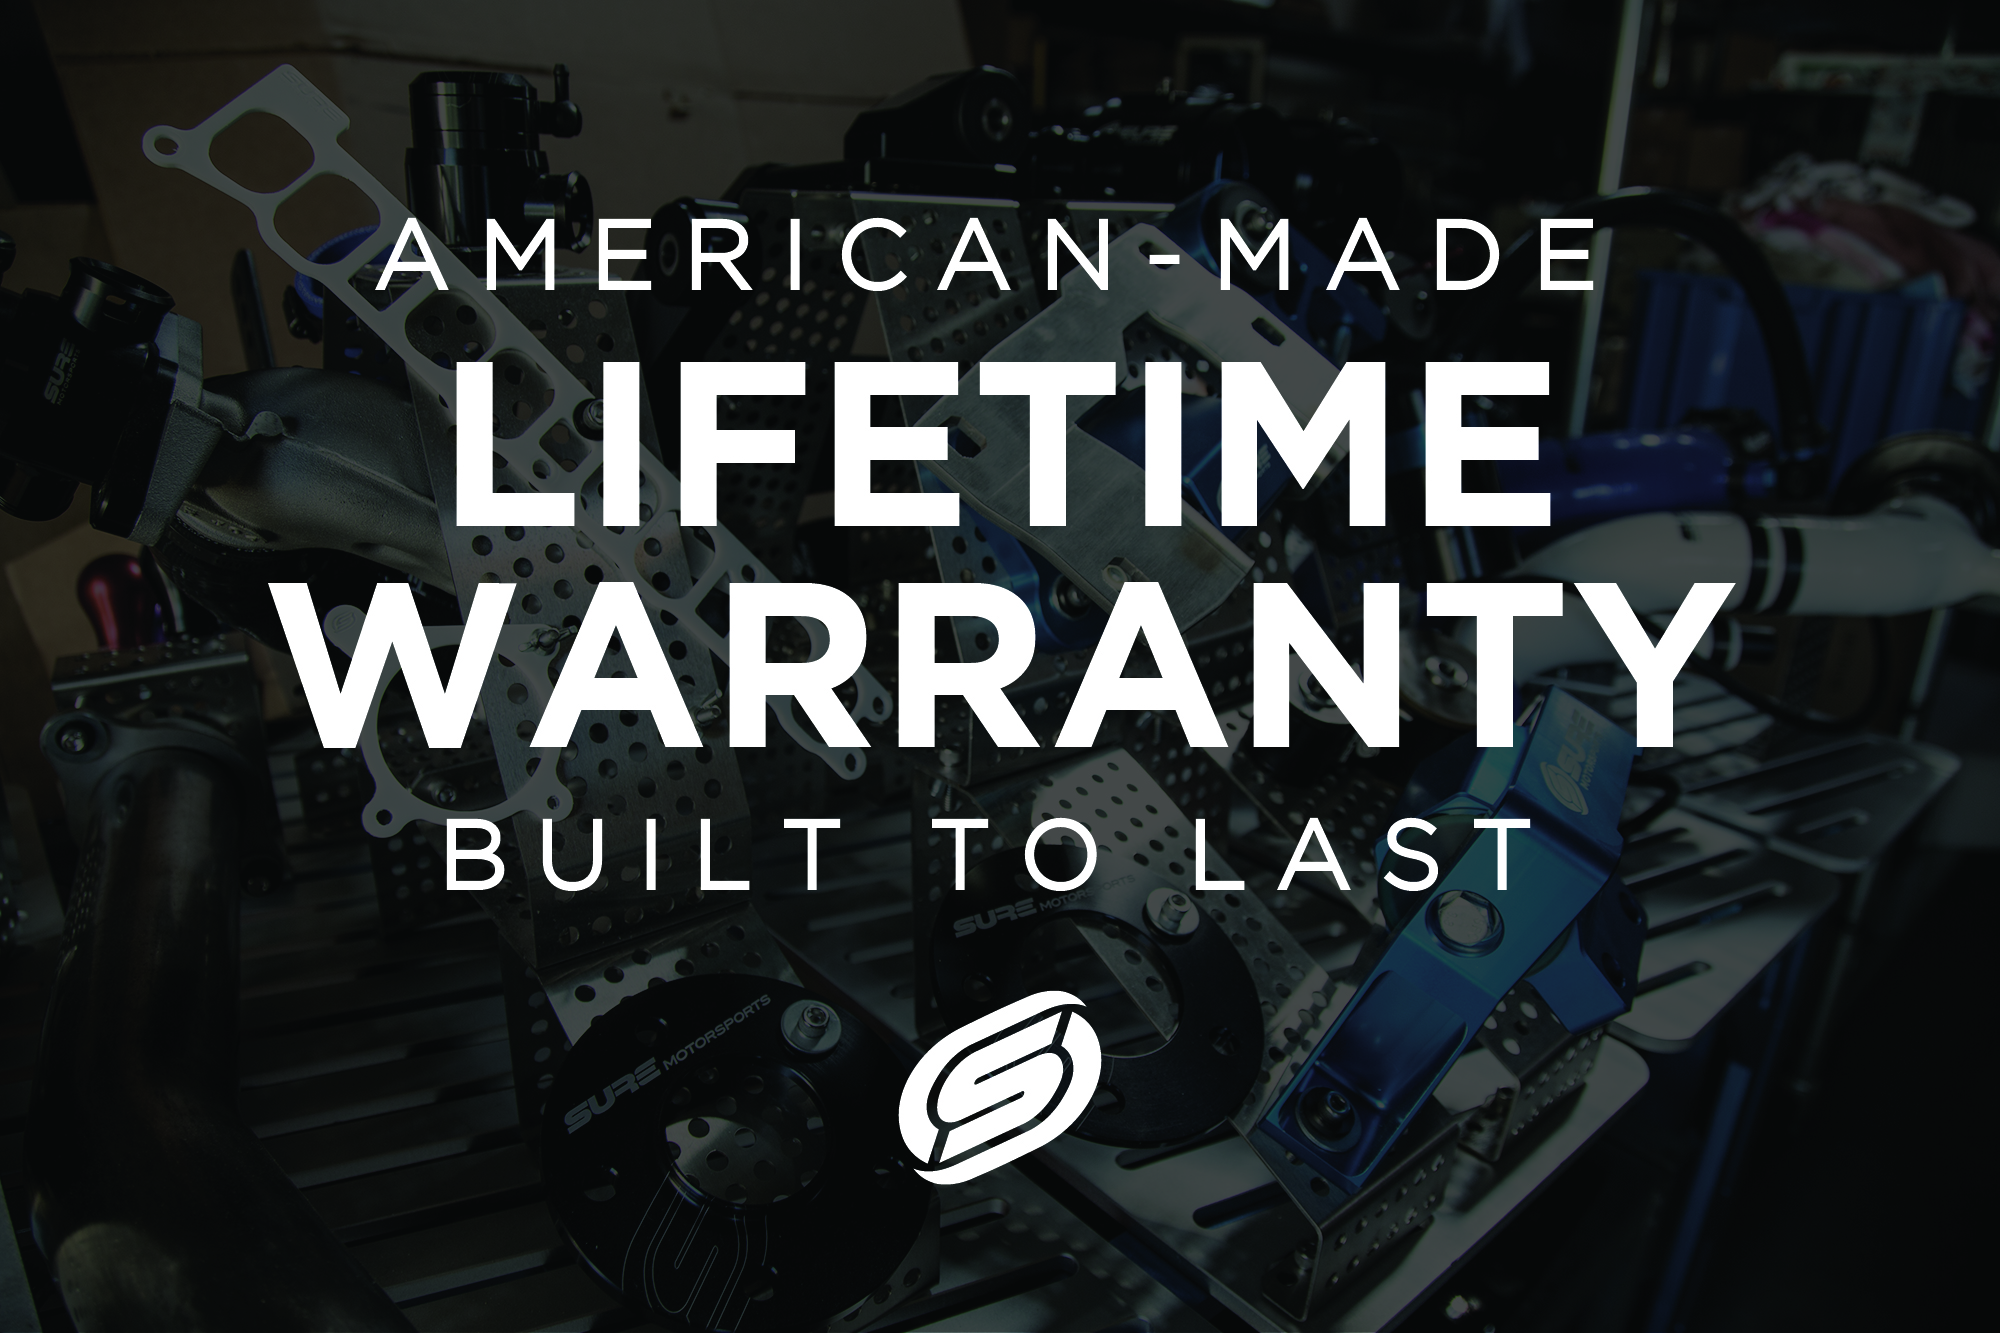 SURE Motorsports Lifetime Warranty   We are dedicated to designingproducts that are built to last a lifetime and enhance your Mazda experience. All of our products, including polyurethane components, are backed by our  Lifetime Warranty .